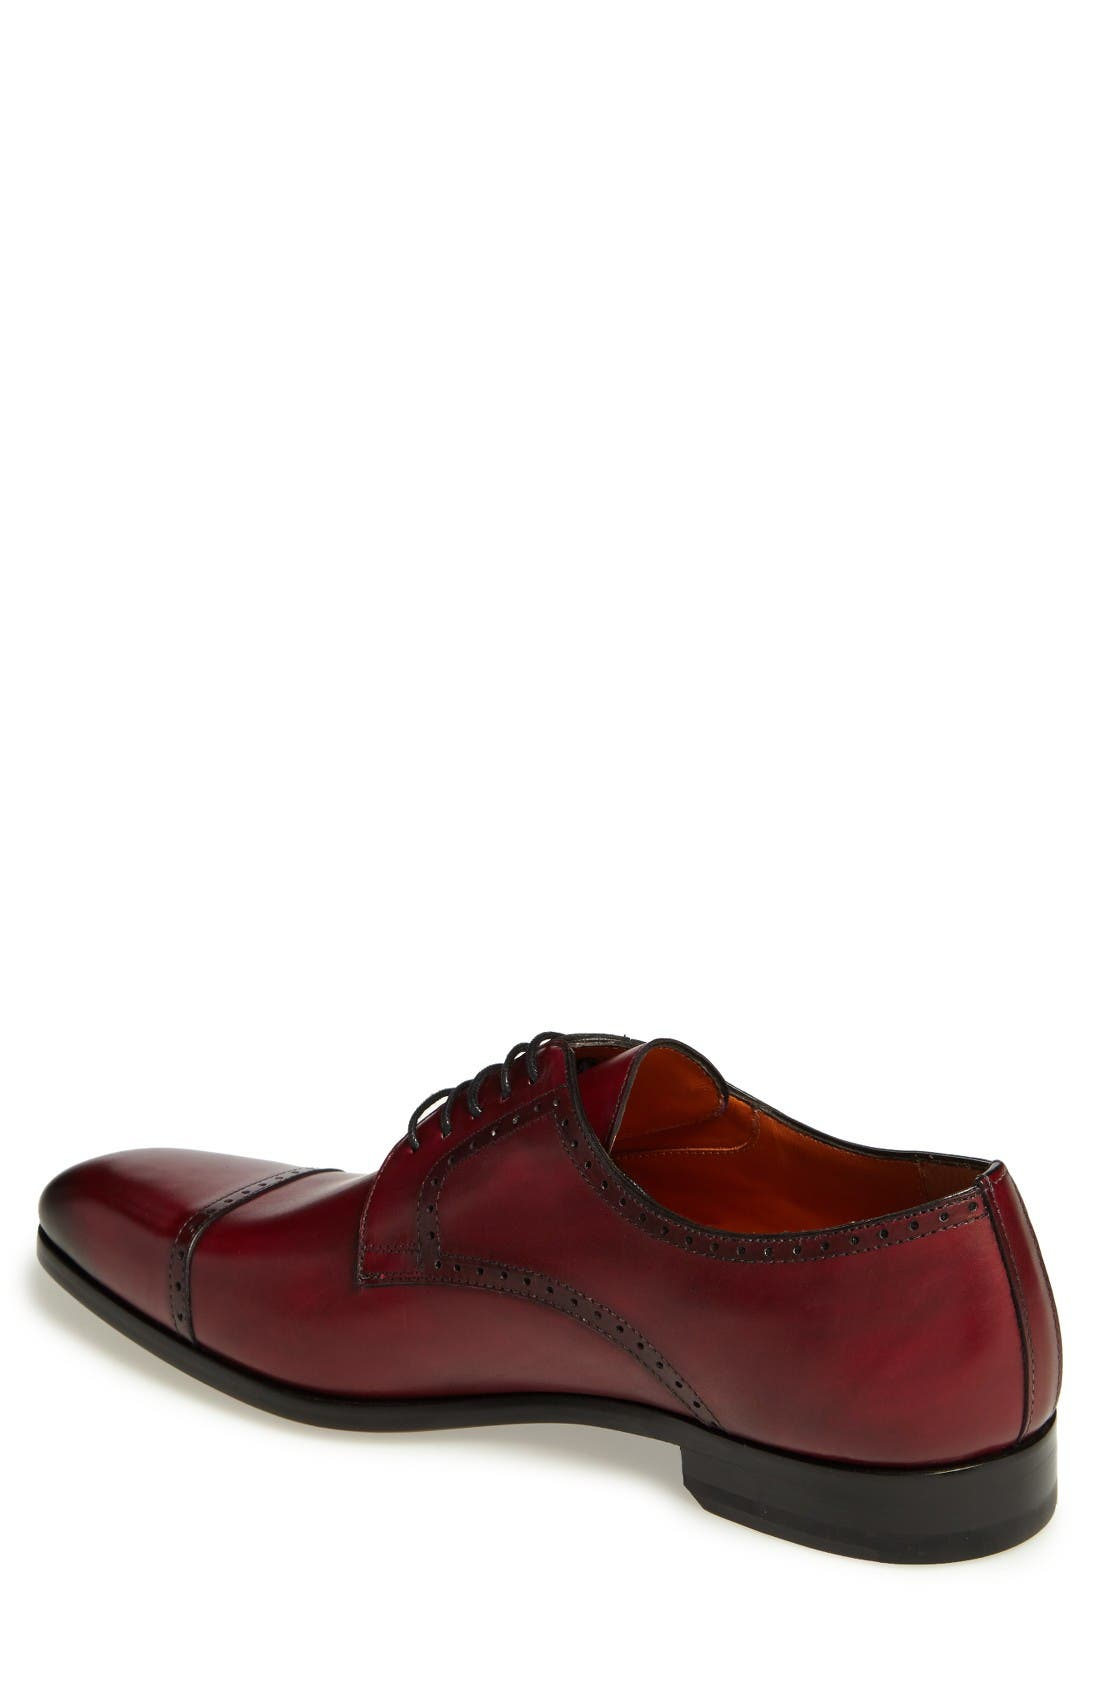 Boas Cap Toe Oxford,                             Alternate thumbnail 2, color,                             Burgundy Leather